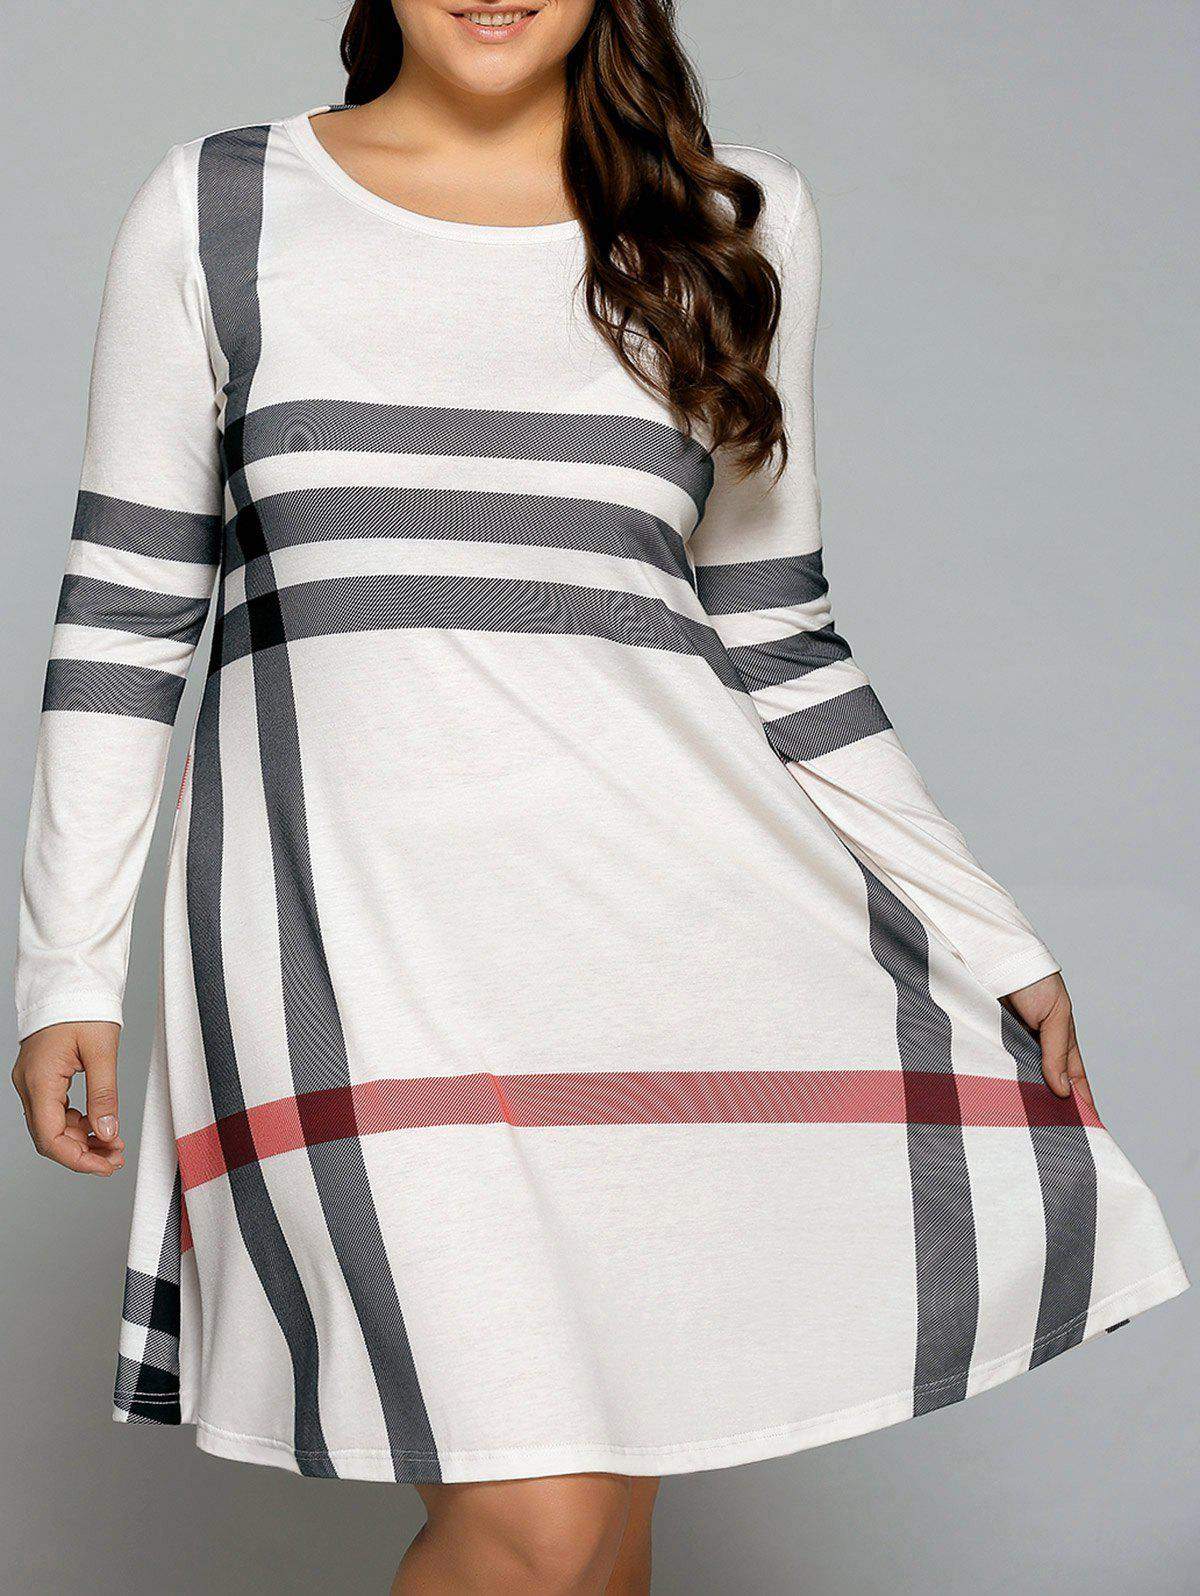 Plus Size Long Sleeve Striped Tee DressWOMEN<br><br>Size: 4XL; Color: OFF-WHITE; Style: Casual; Material: Polyester,Spandex; Silhouette: A-Line; Dresses Length: Knee-Length; Neckline: Scoop Neck; Sleeve Length: Long Sleeves; Pattern Type: Striped; With Belt: No; Season: Fall,Spring,Summer; Weight: 0.3800kg; Package Contents: 1 x Dress;